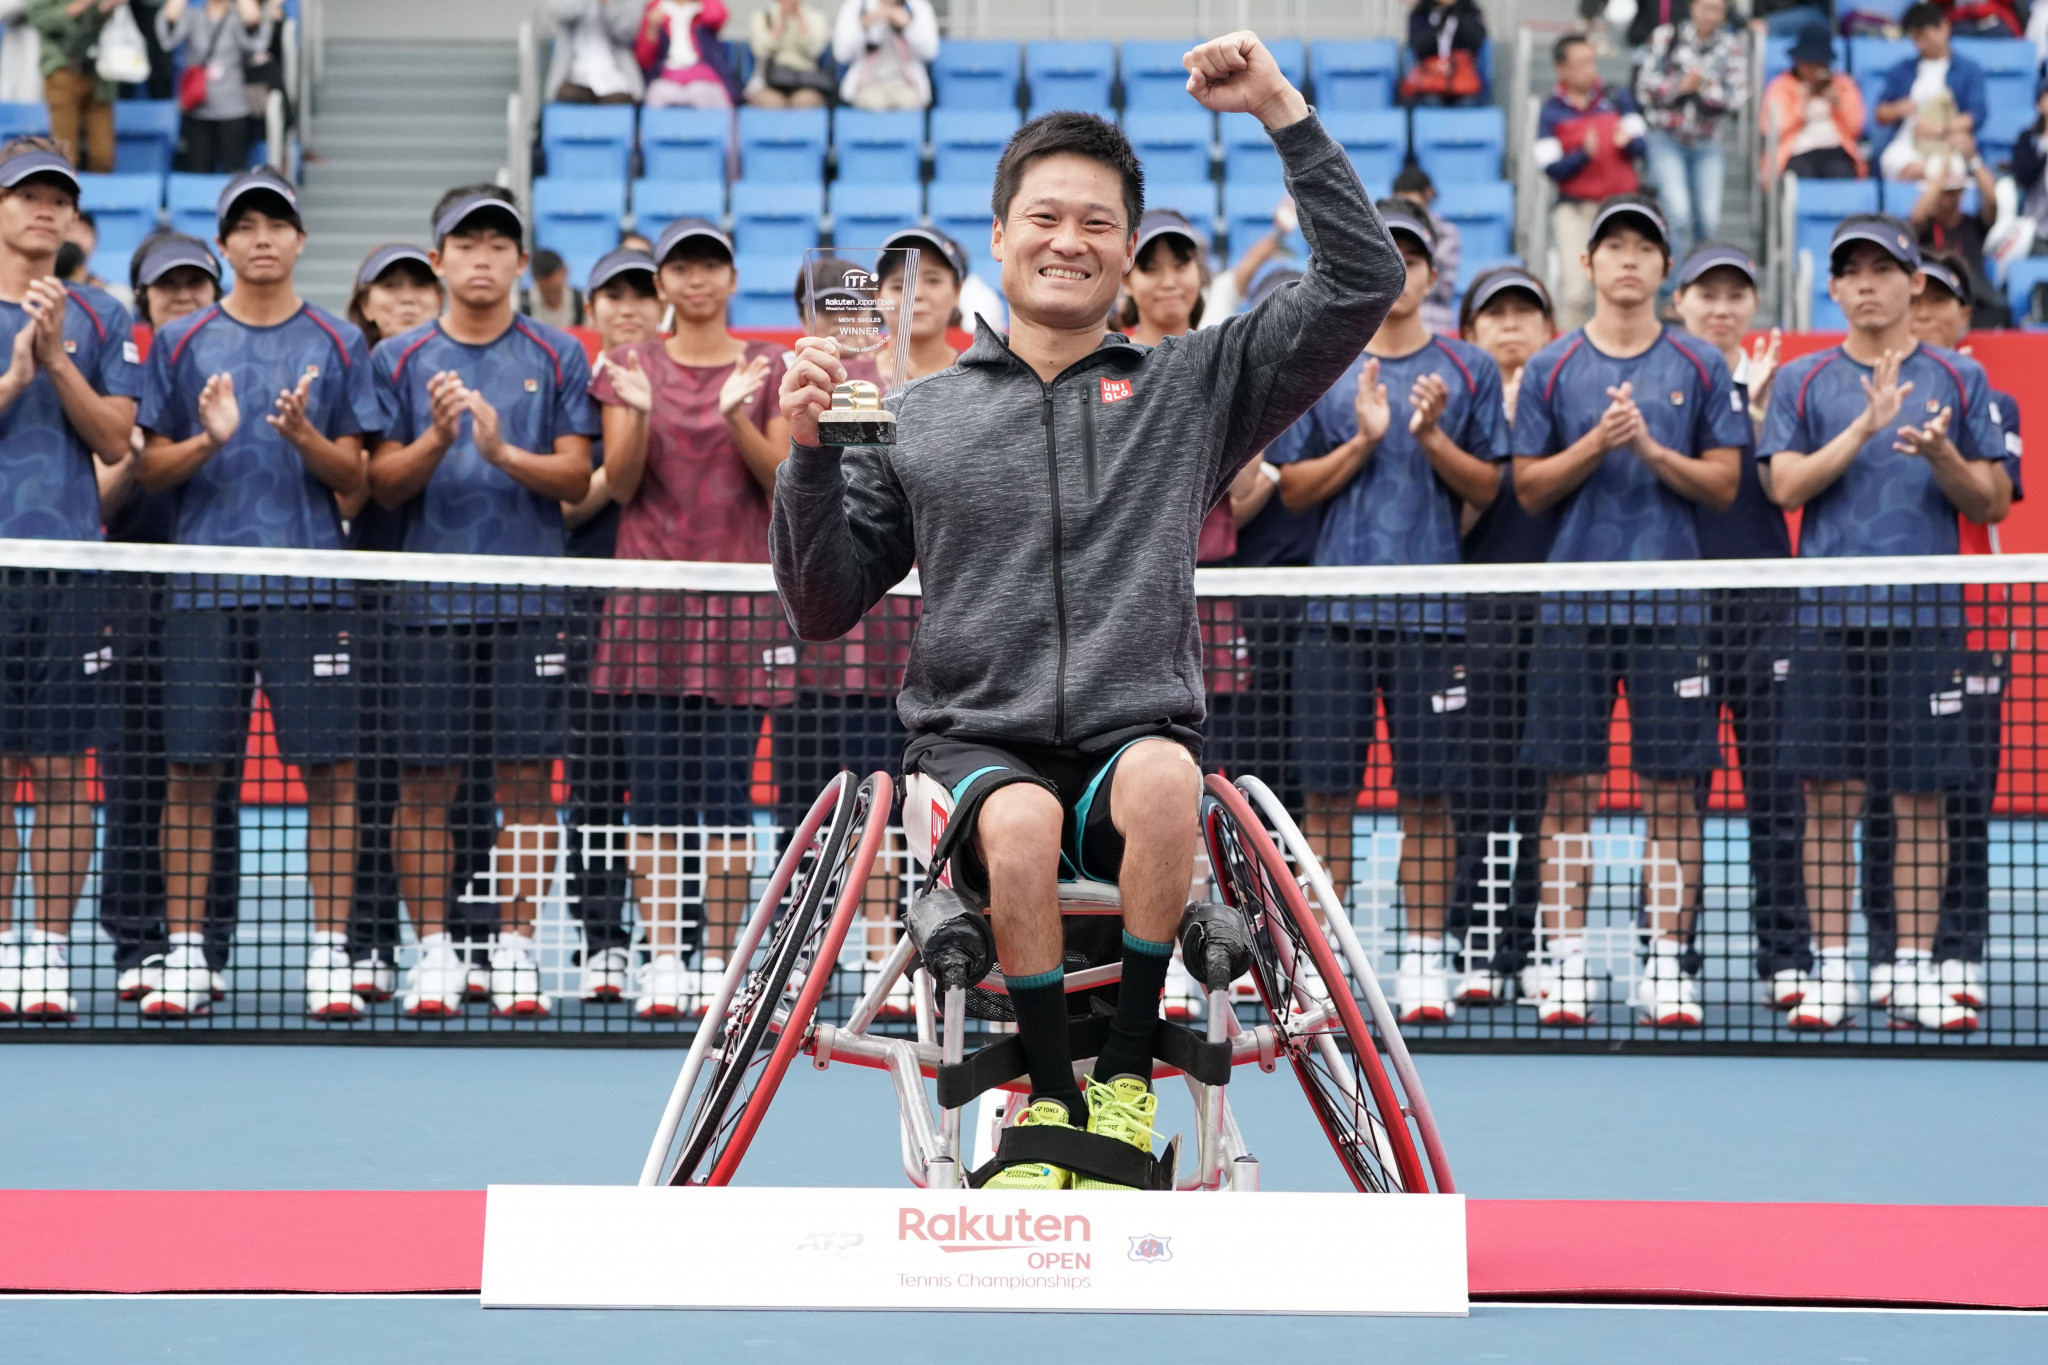 Japanese wheelchair tennis player Shingo Kunieda won the Japan Open in October ©Getty Images